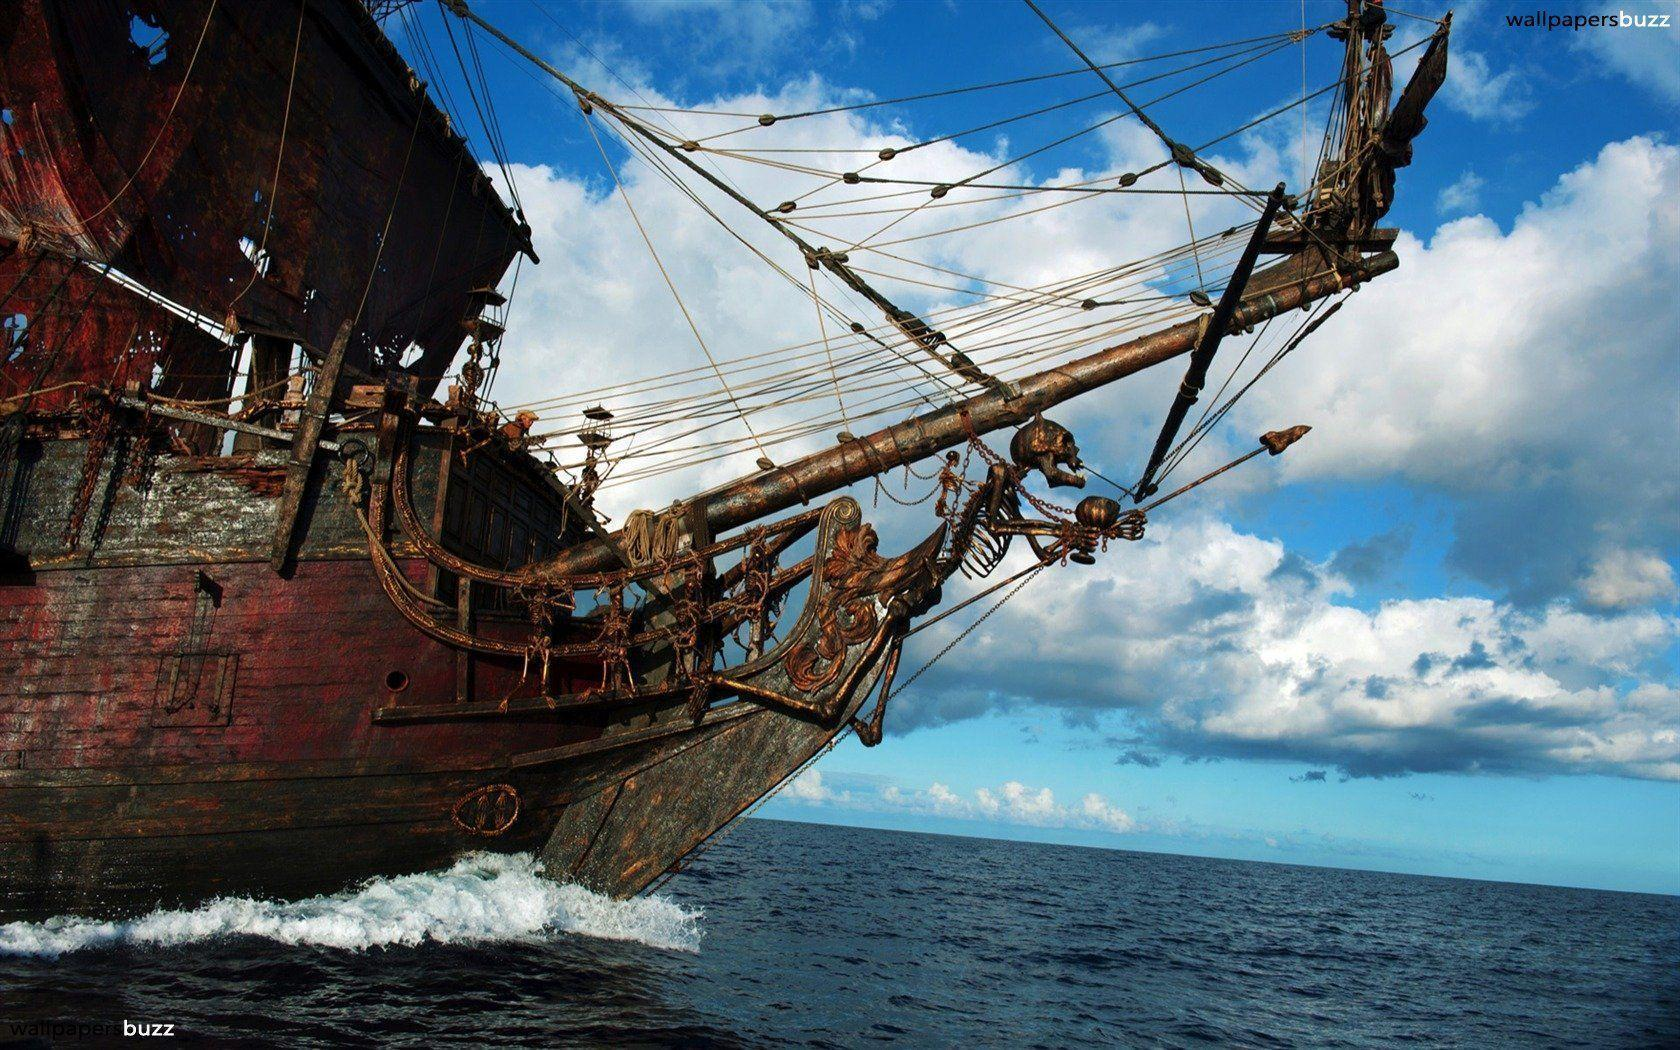 pirate ship computer wallpapers - photo #12